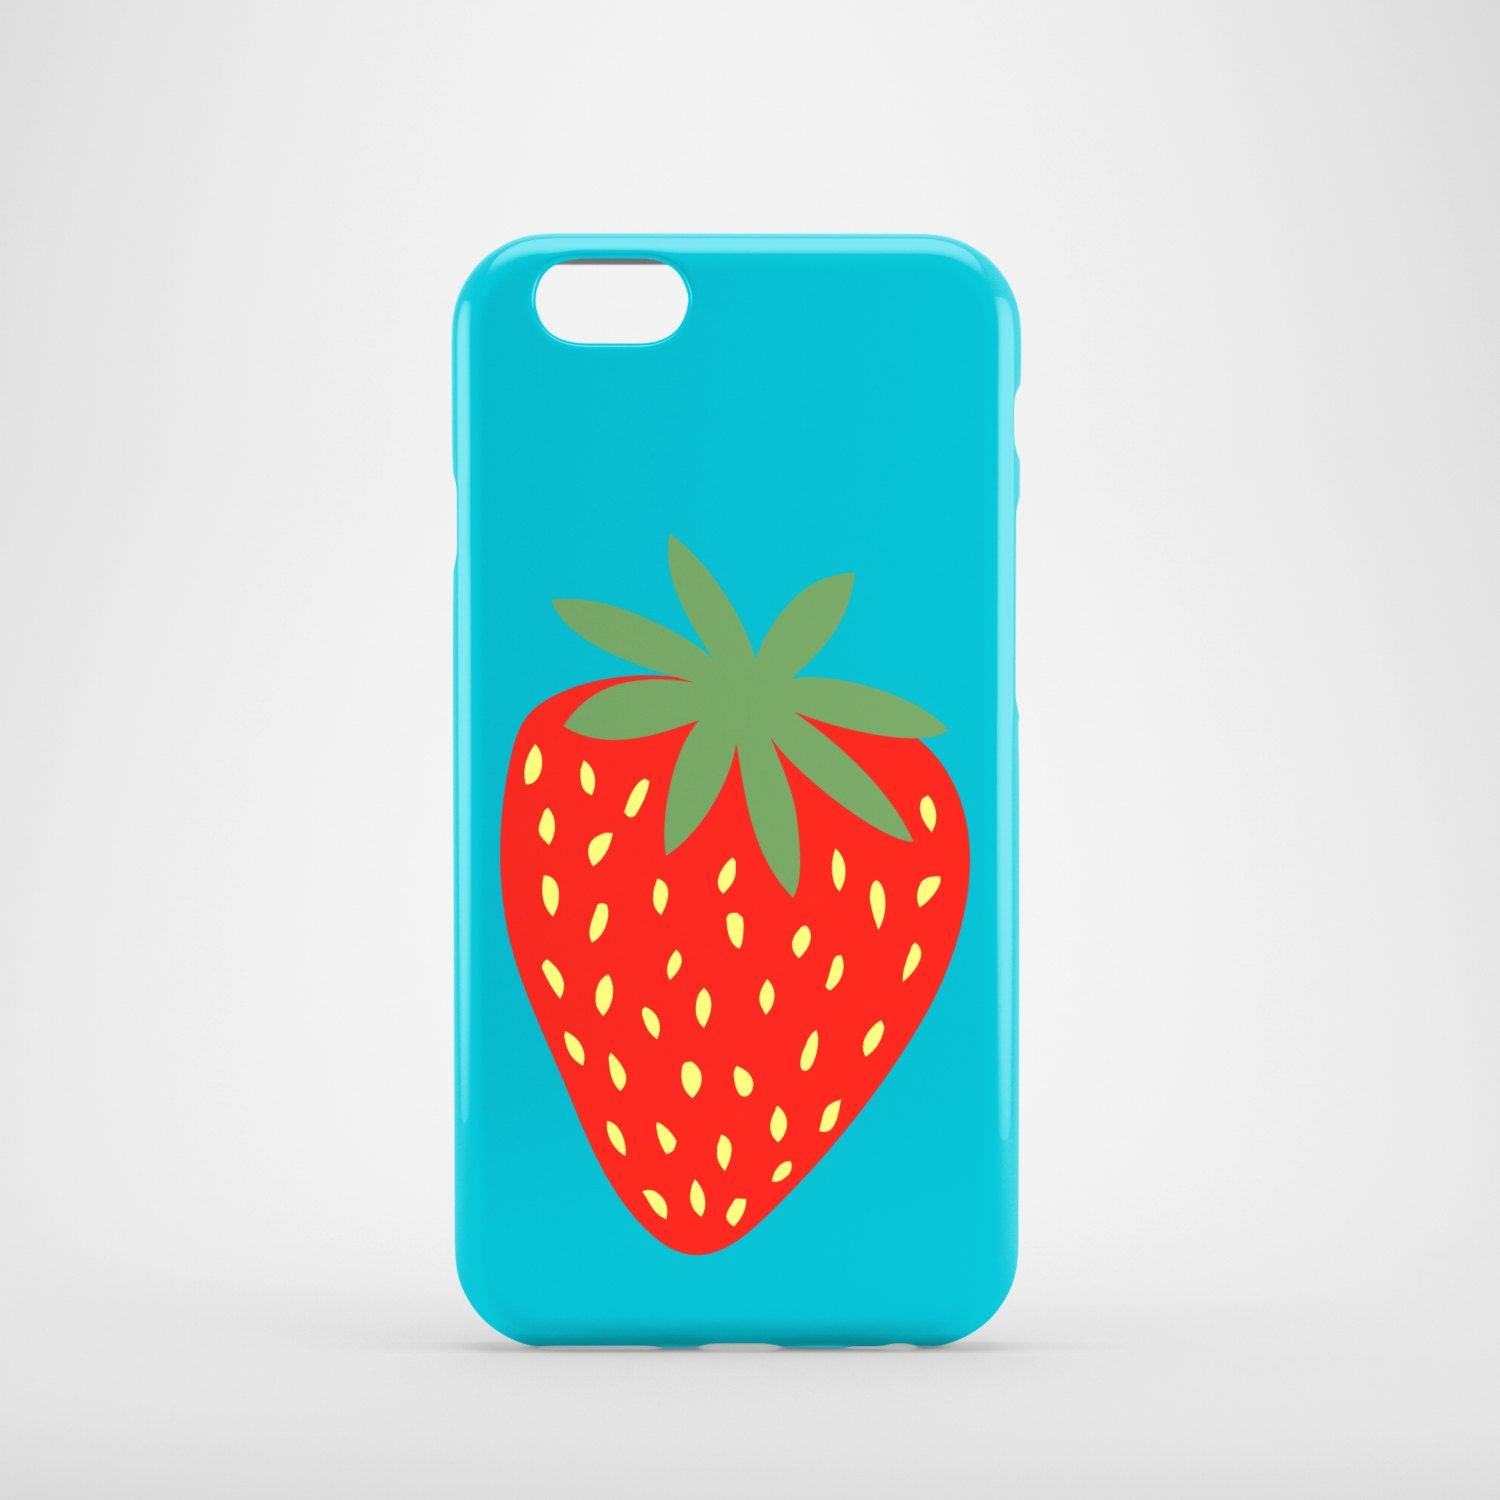 Giant Strawberry phone case / Bright iPhone 8 case / blue